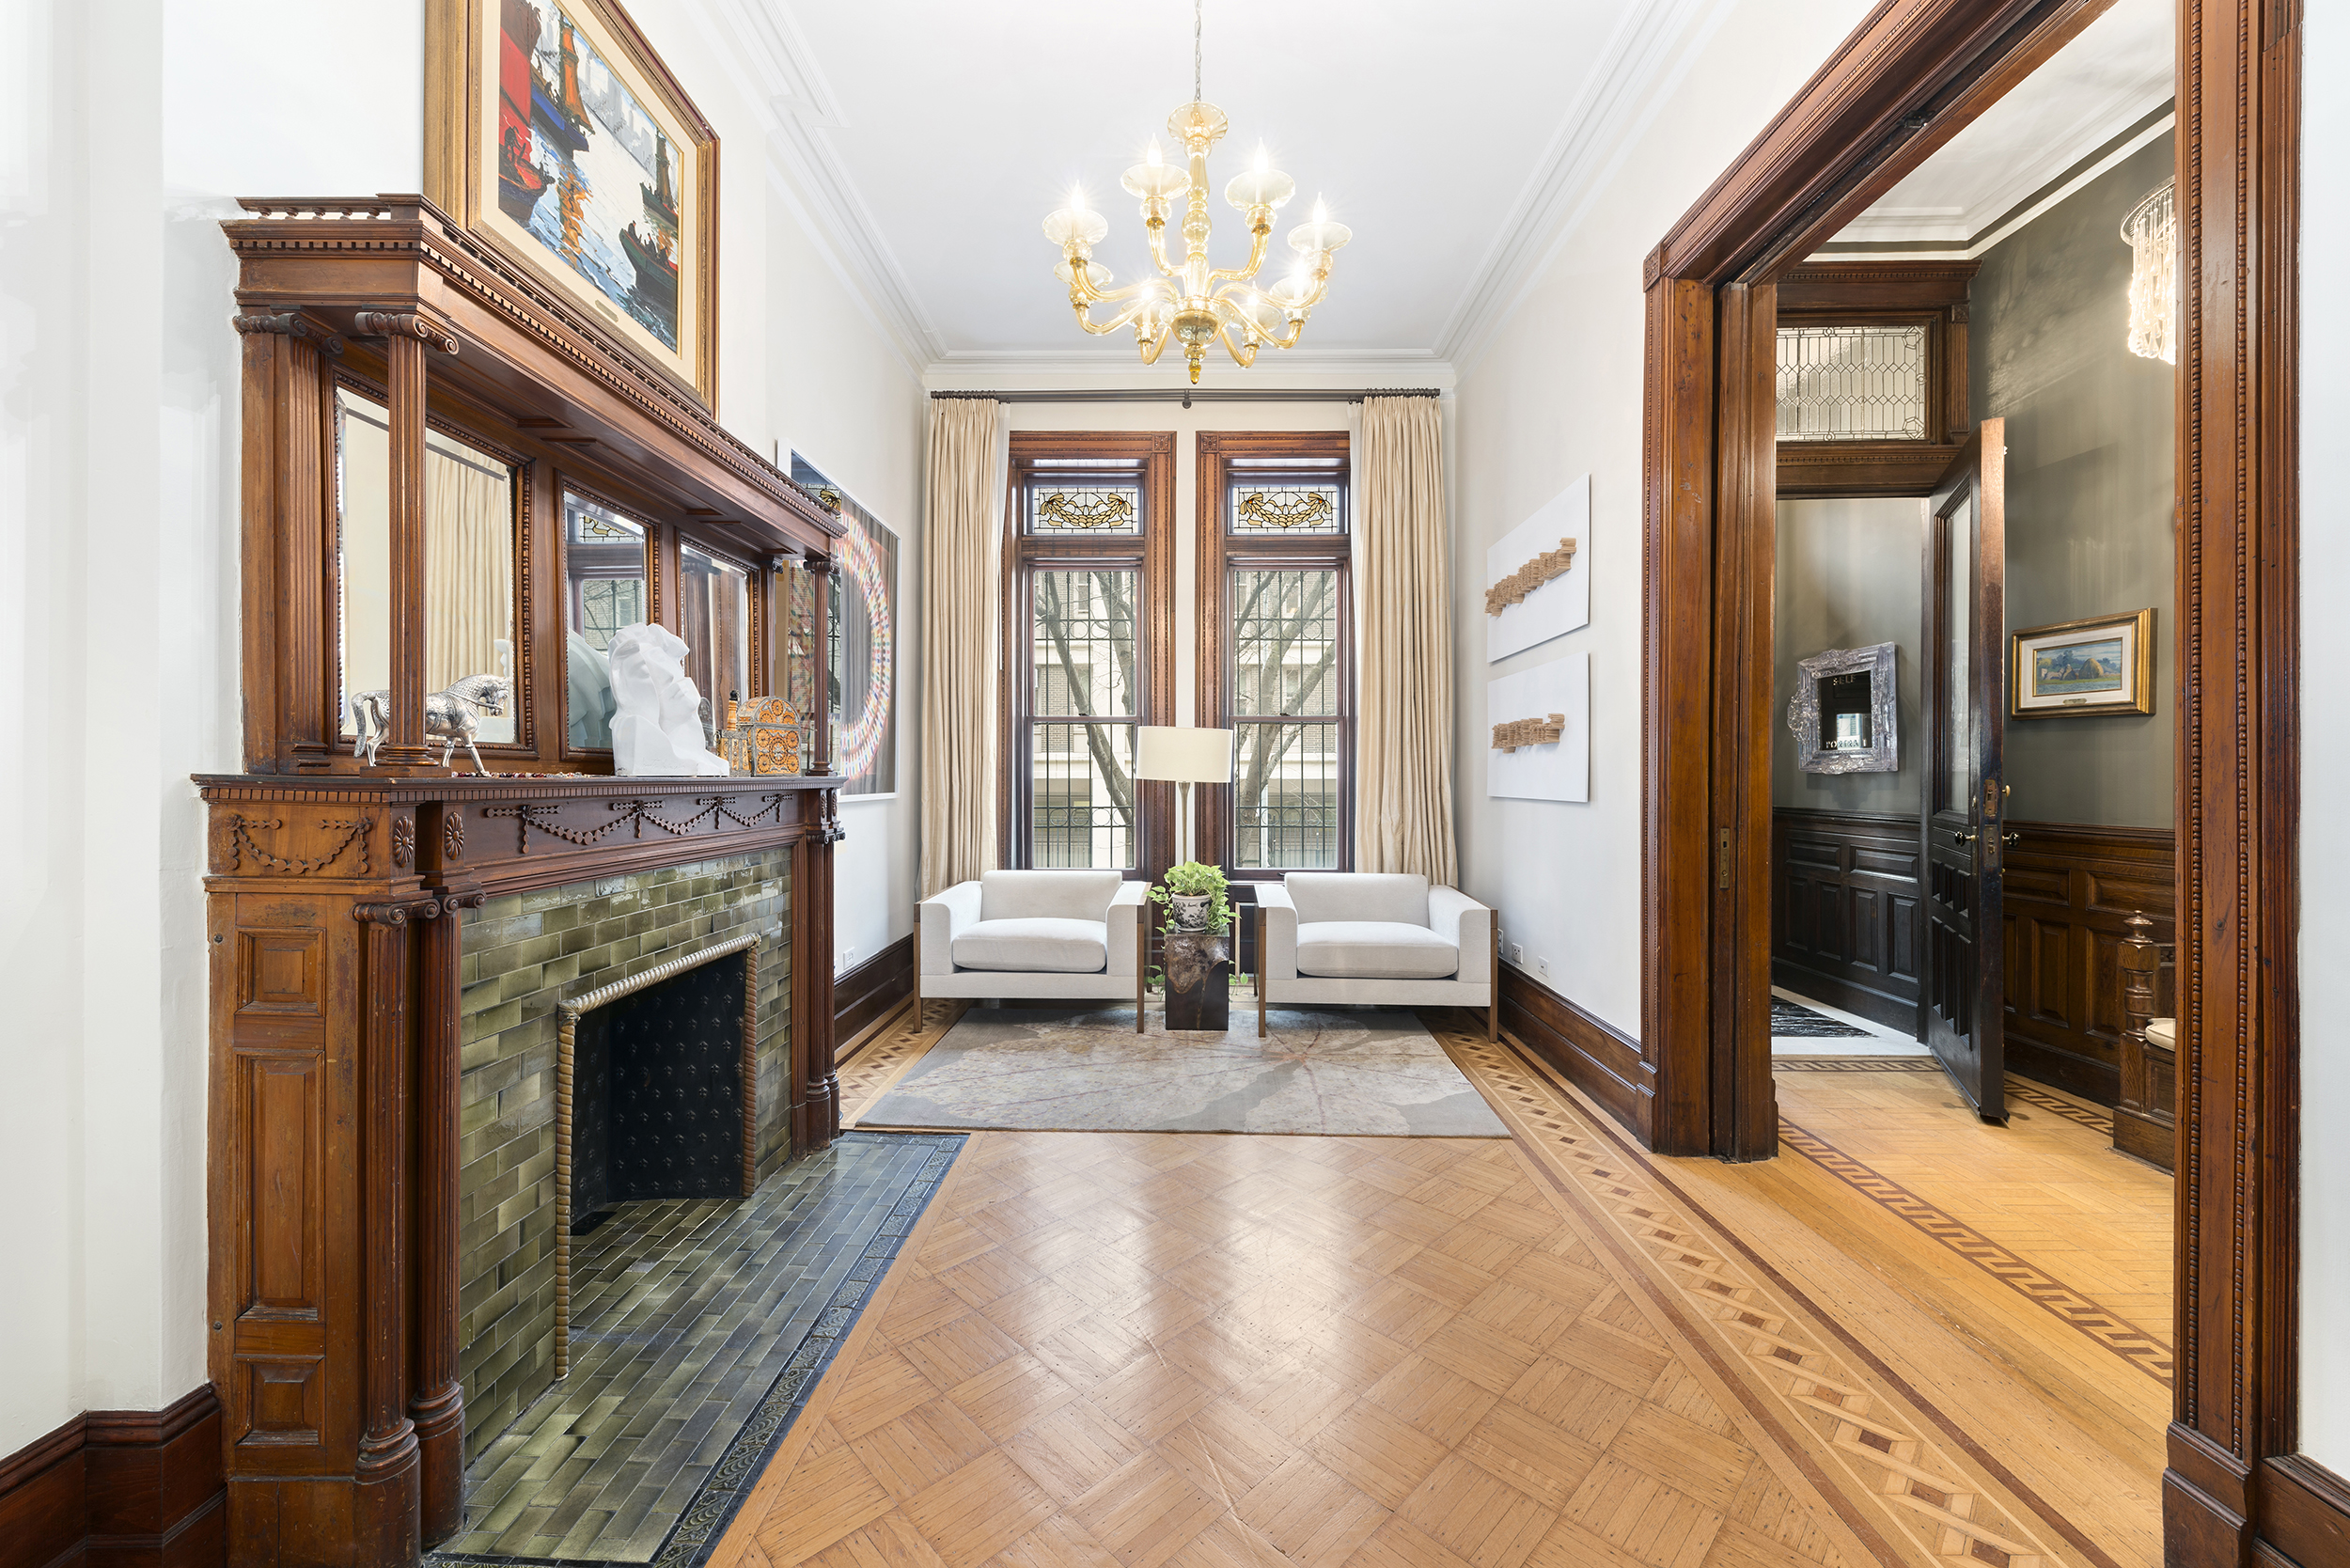 121 West 85th Street: Luxury Upper West Side townhouse for sale